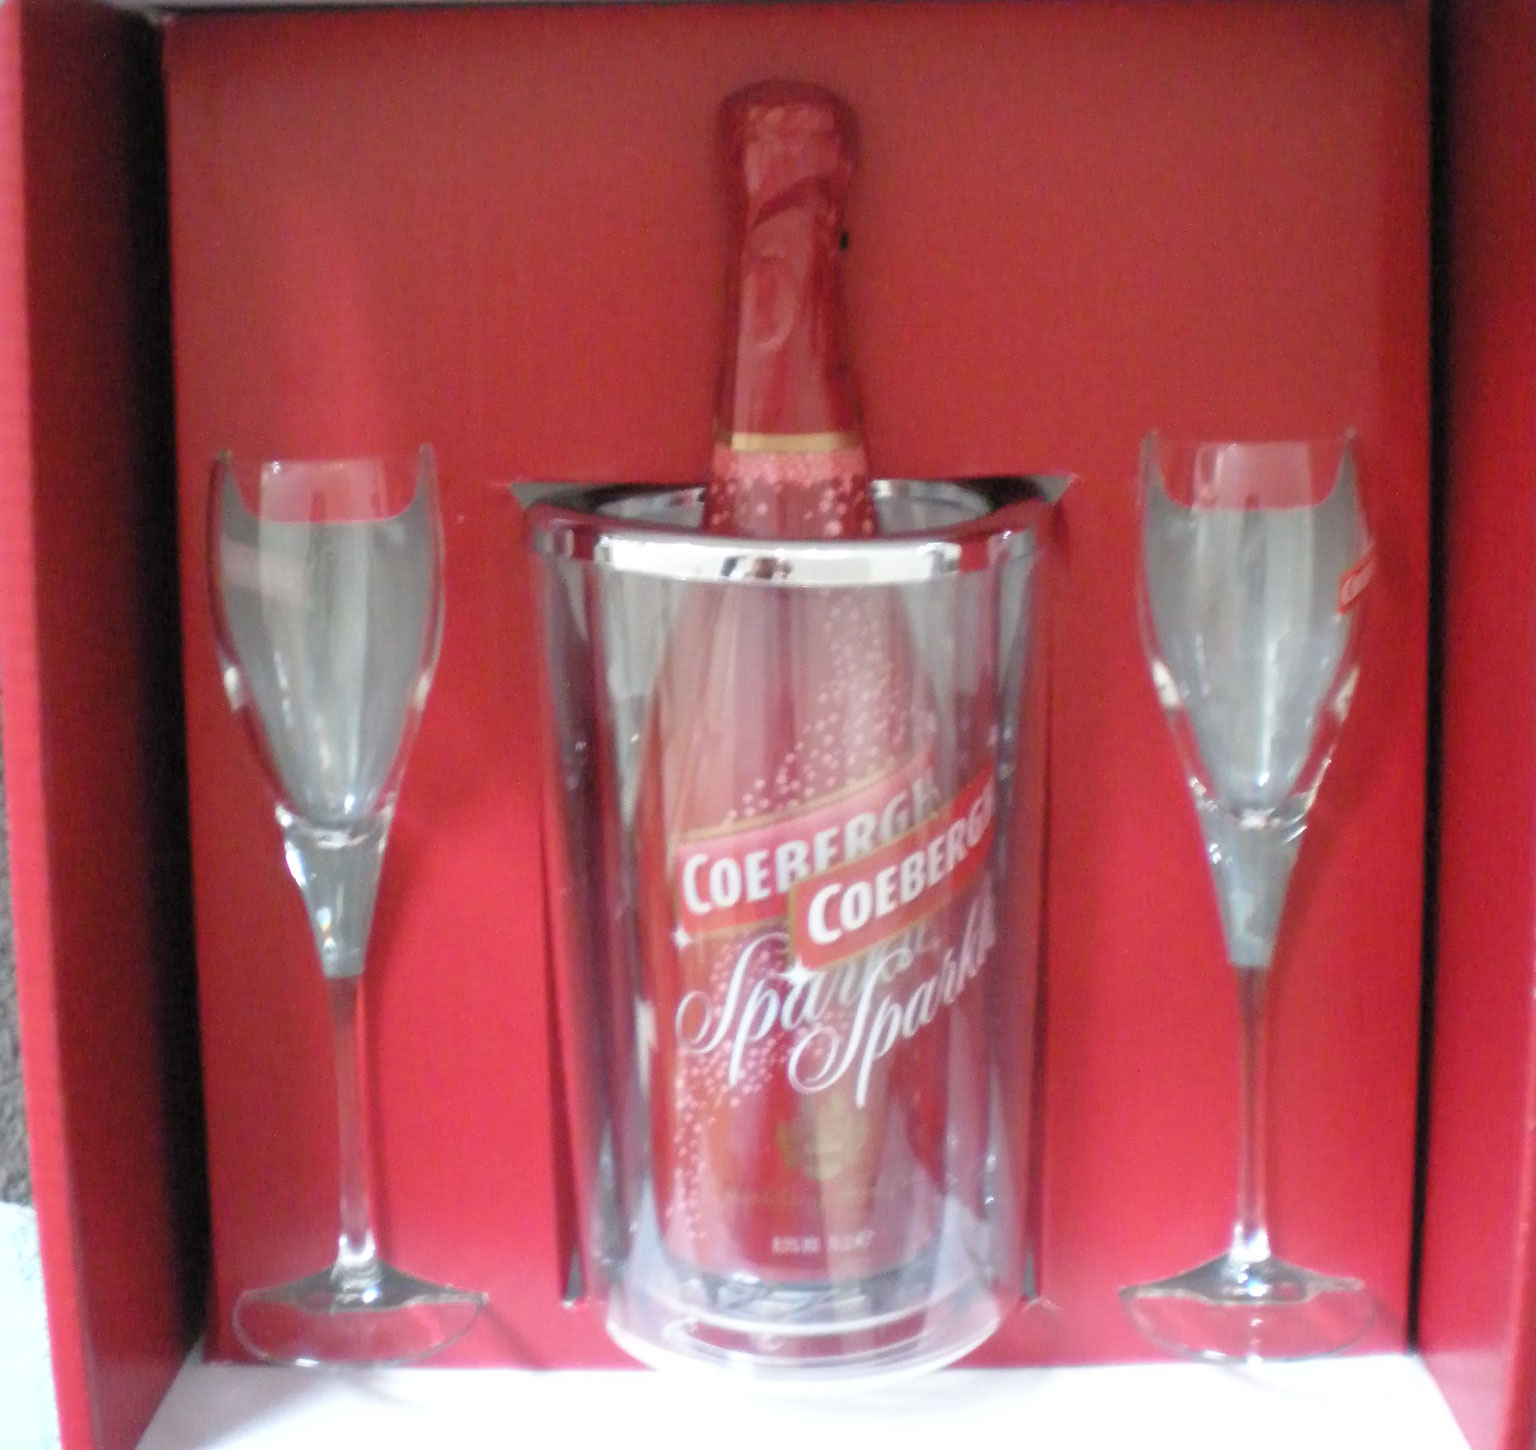 Cheers! With Coebergh Sparkle